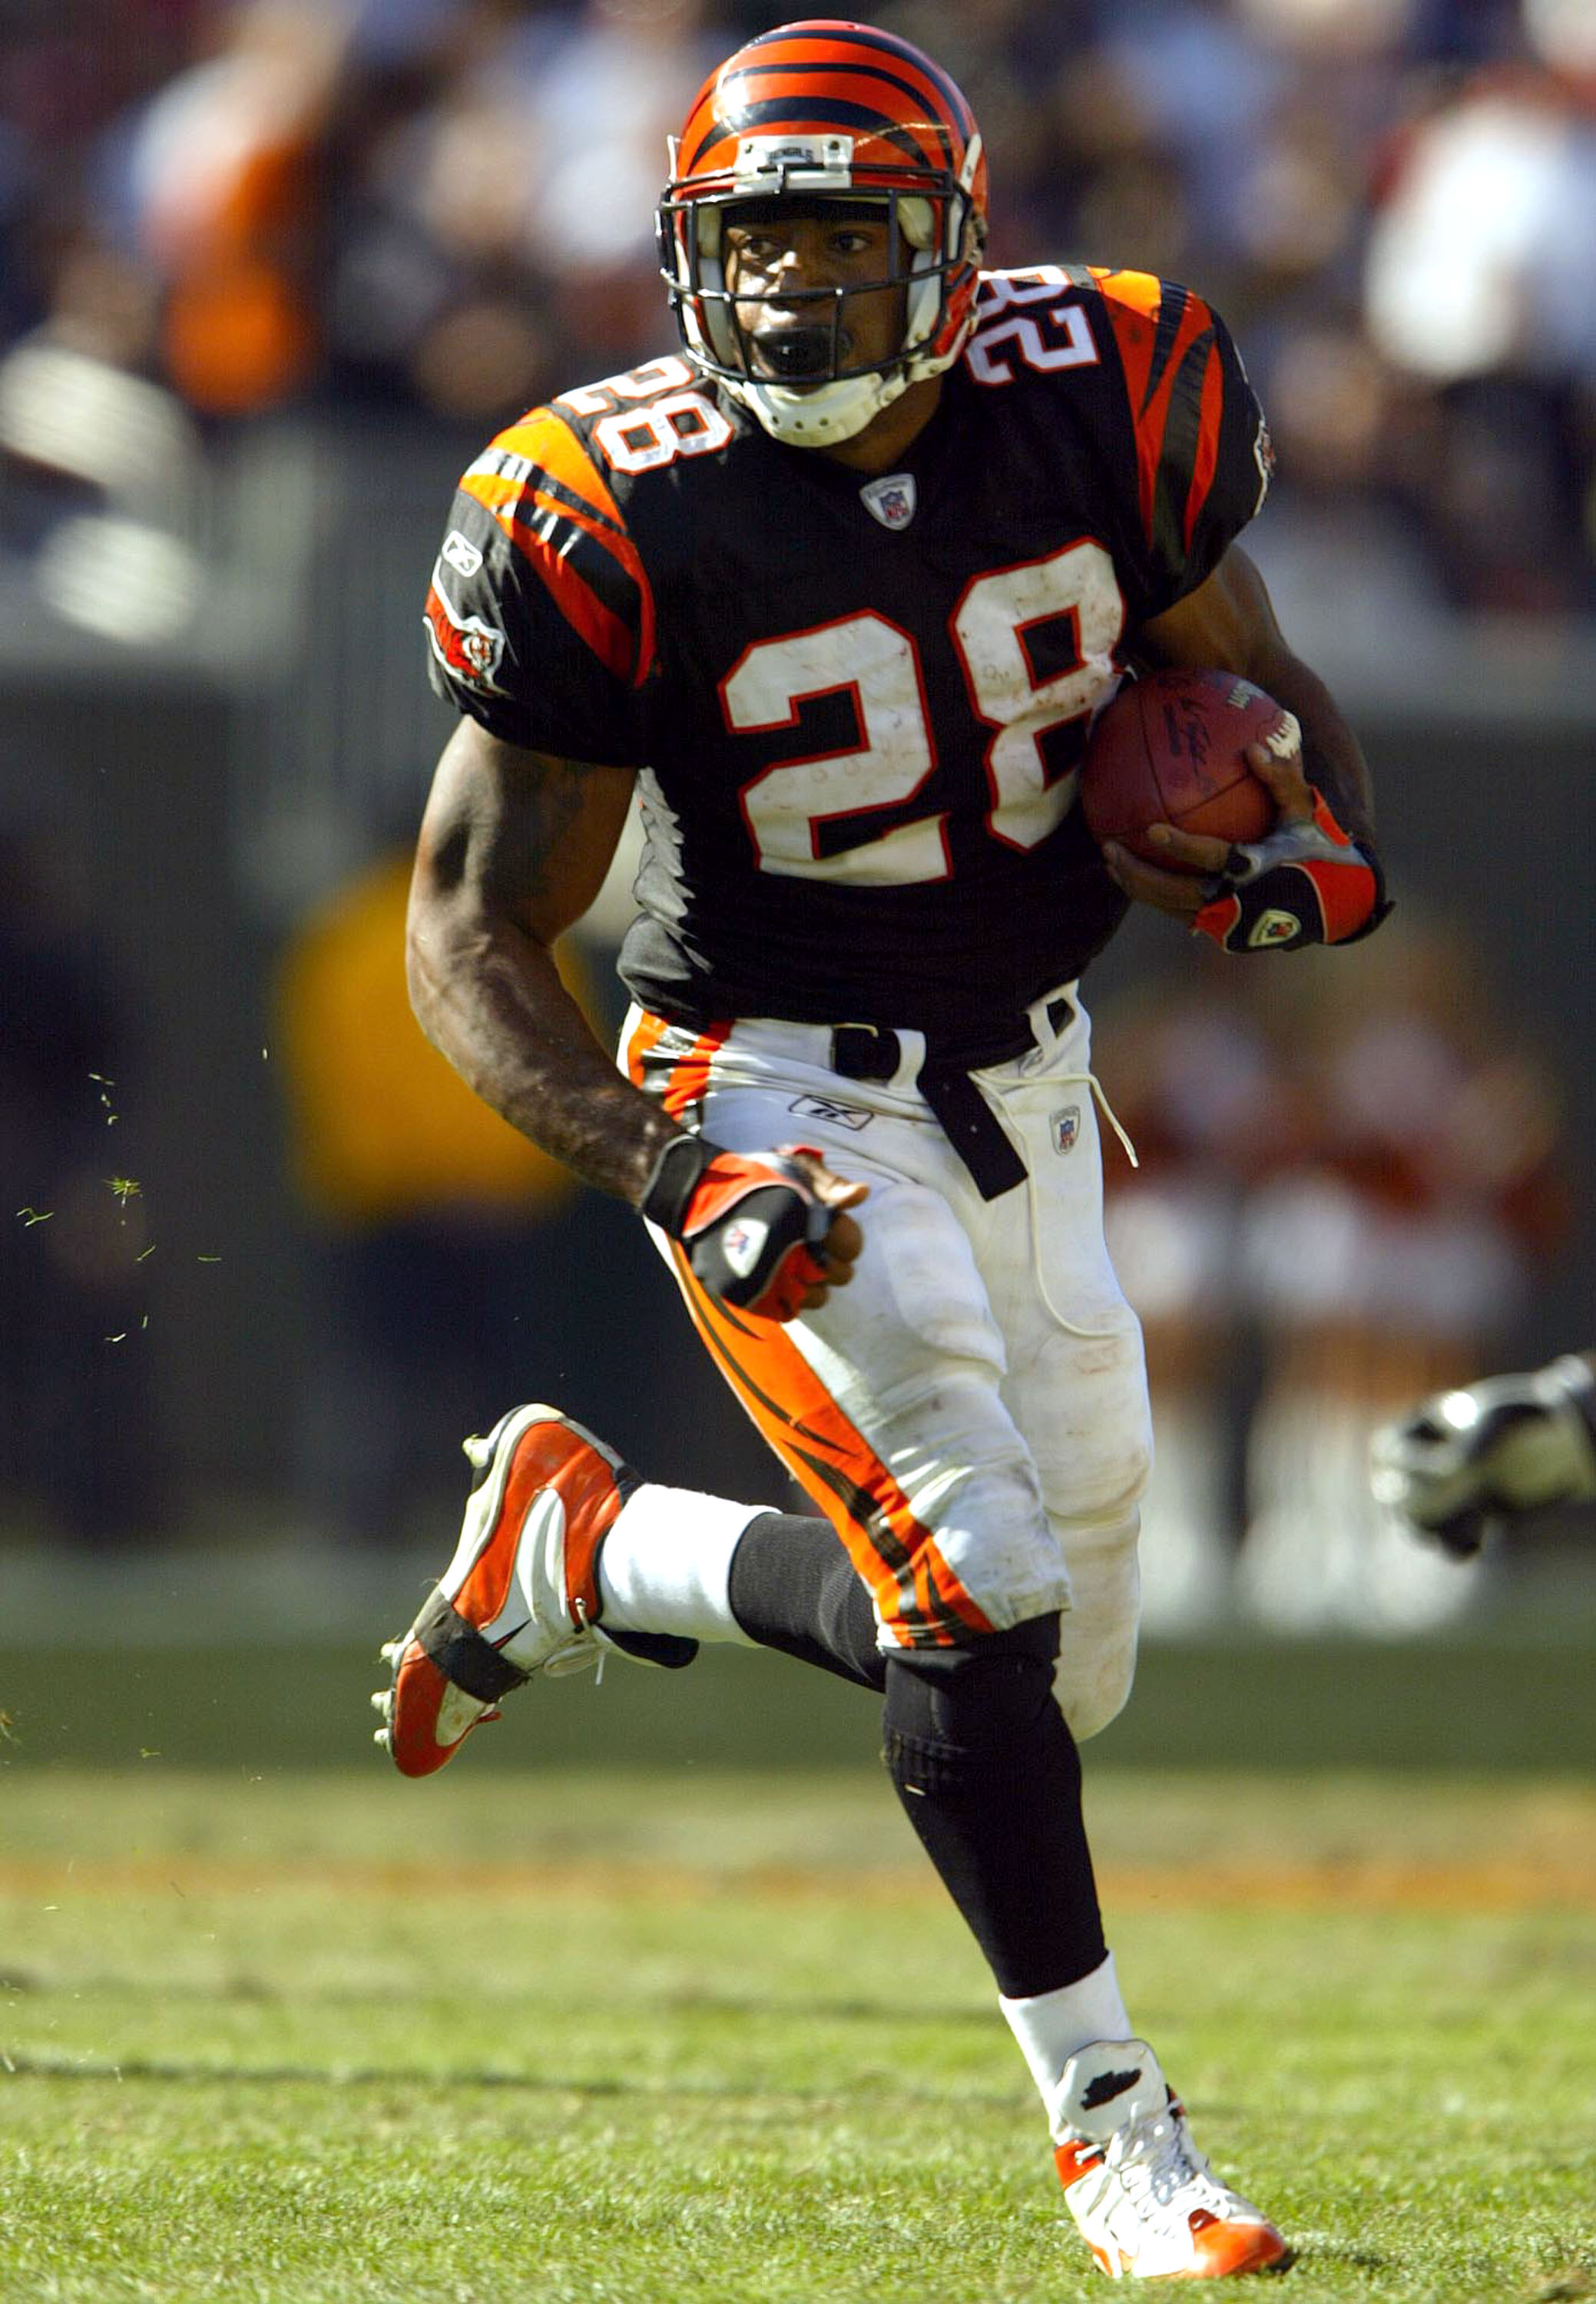 CINCINNATI, OH - OCTOBER 19:  Corey Dillon #28 of the Cincinnati Bengals runs with the ball against the Baltimore Ravens during the 34-26 Bengals win over the Ravens October 19, 2003 at Paul Brown Stadium in Cincinnati, Ohio.  (Photo by Andy Lyons/Getty I